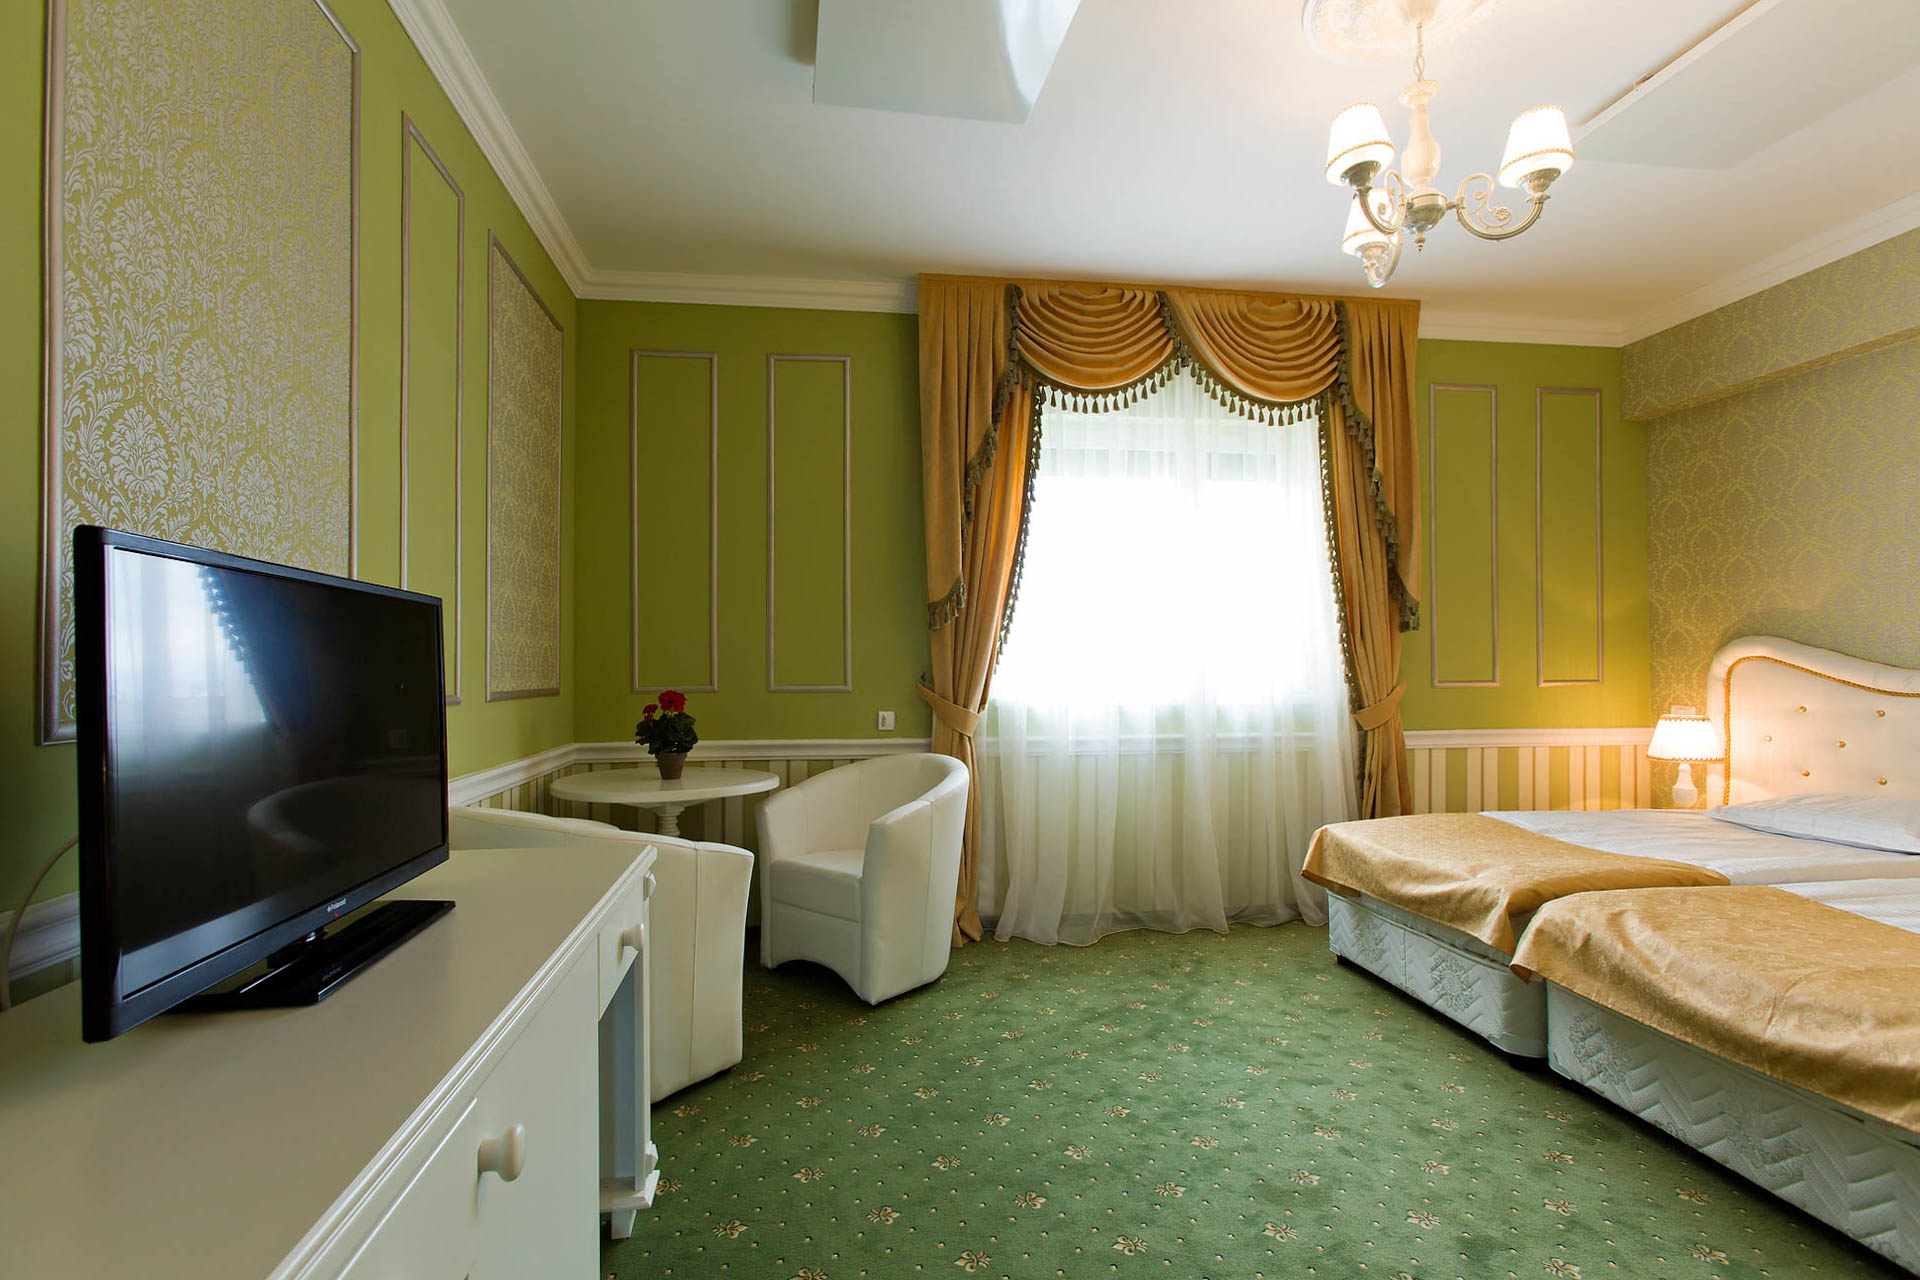 Accommodation Brasov - The Covasna Room